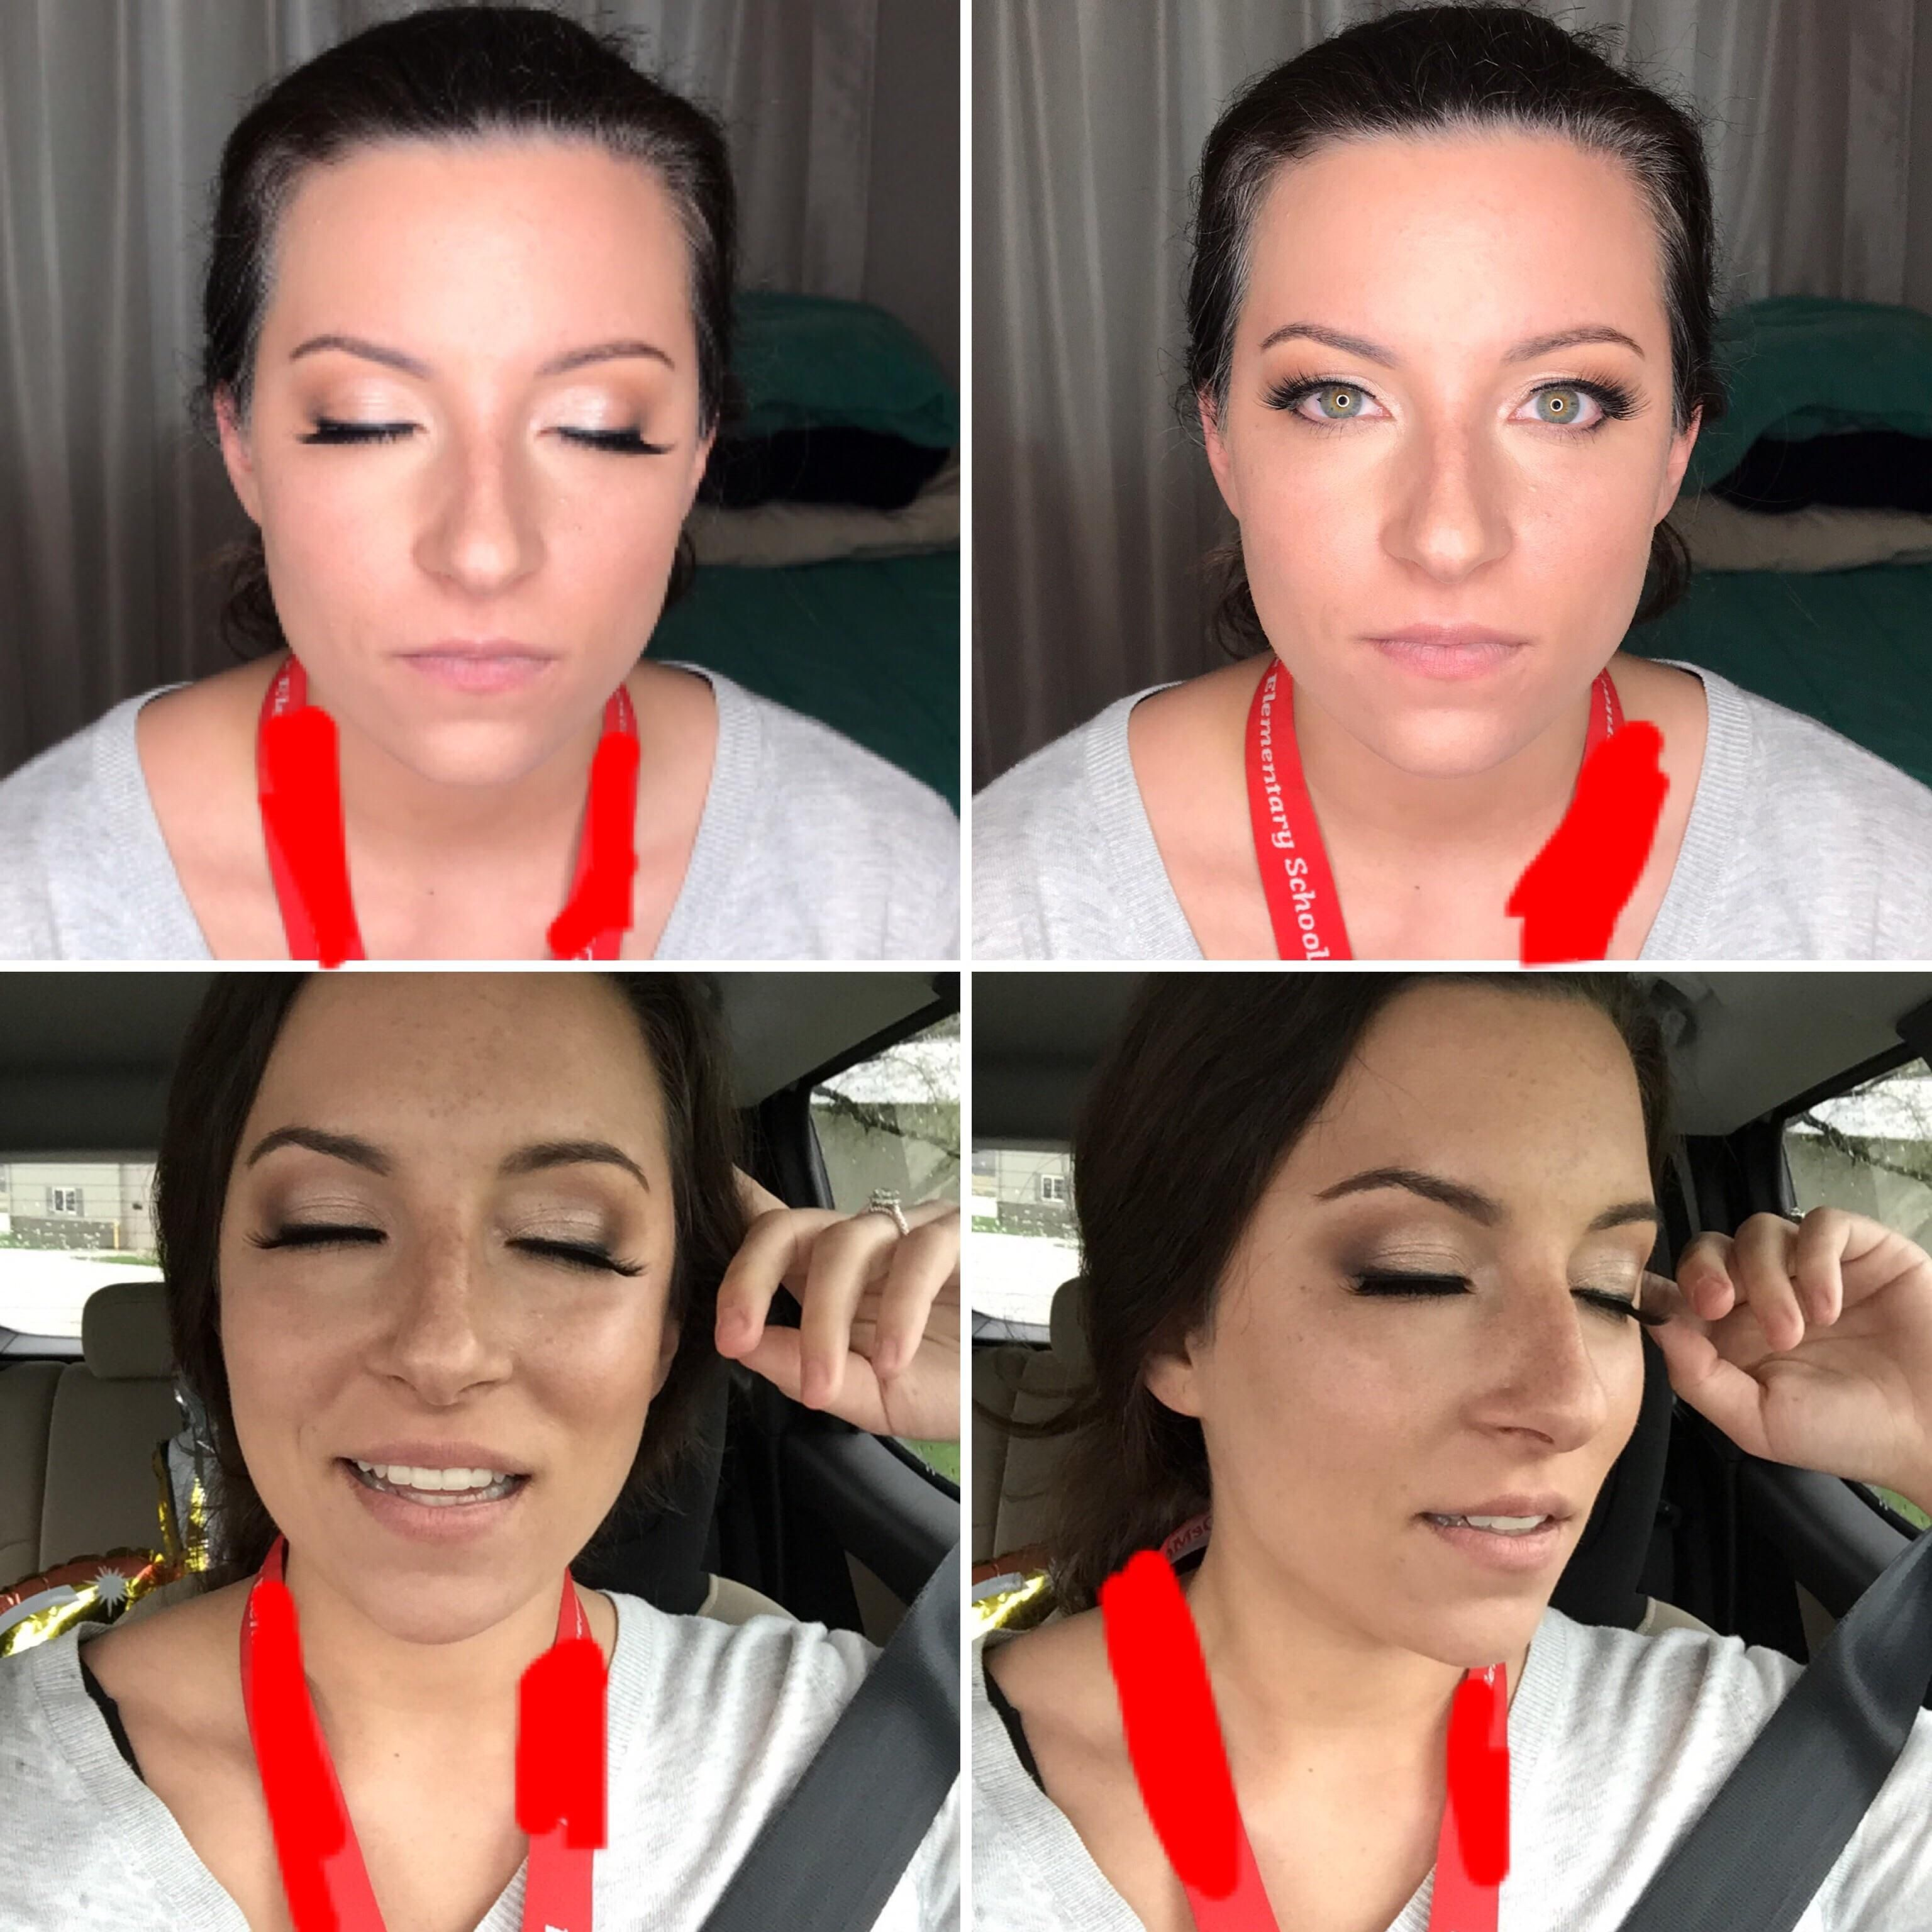 Makeup Trial Cc Welcome Check More At Https Www Evmore Net Mountain Weddings Makeup Trial Makeup Trial Wedding Makeup Wedding Registry